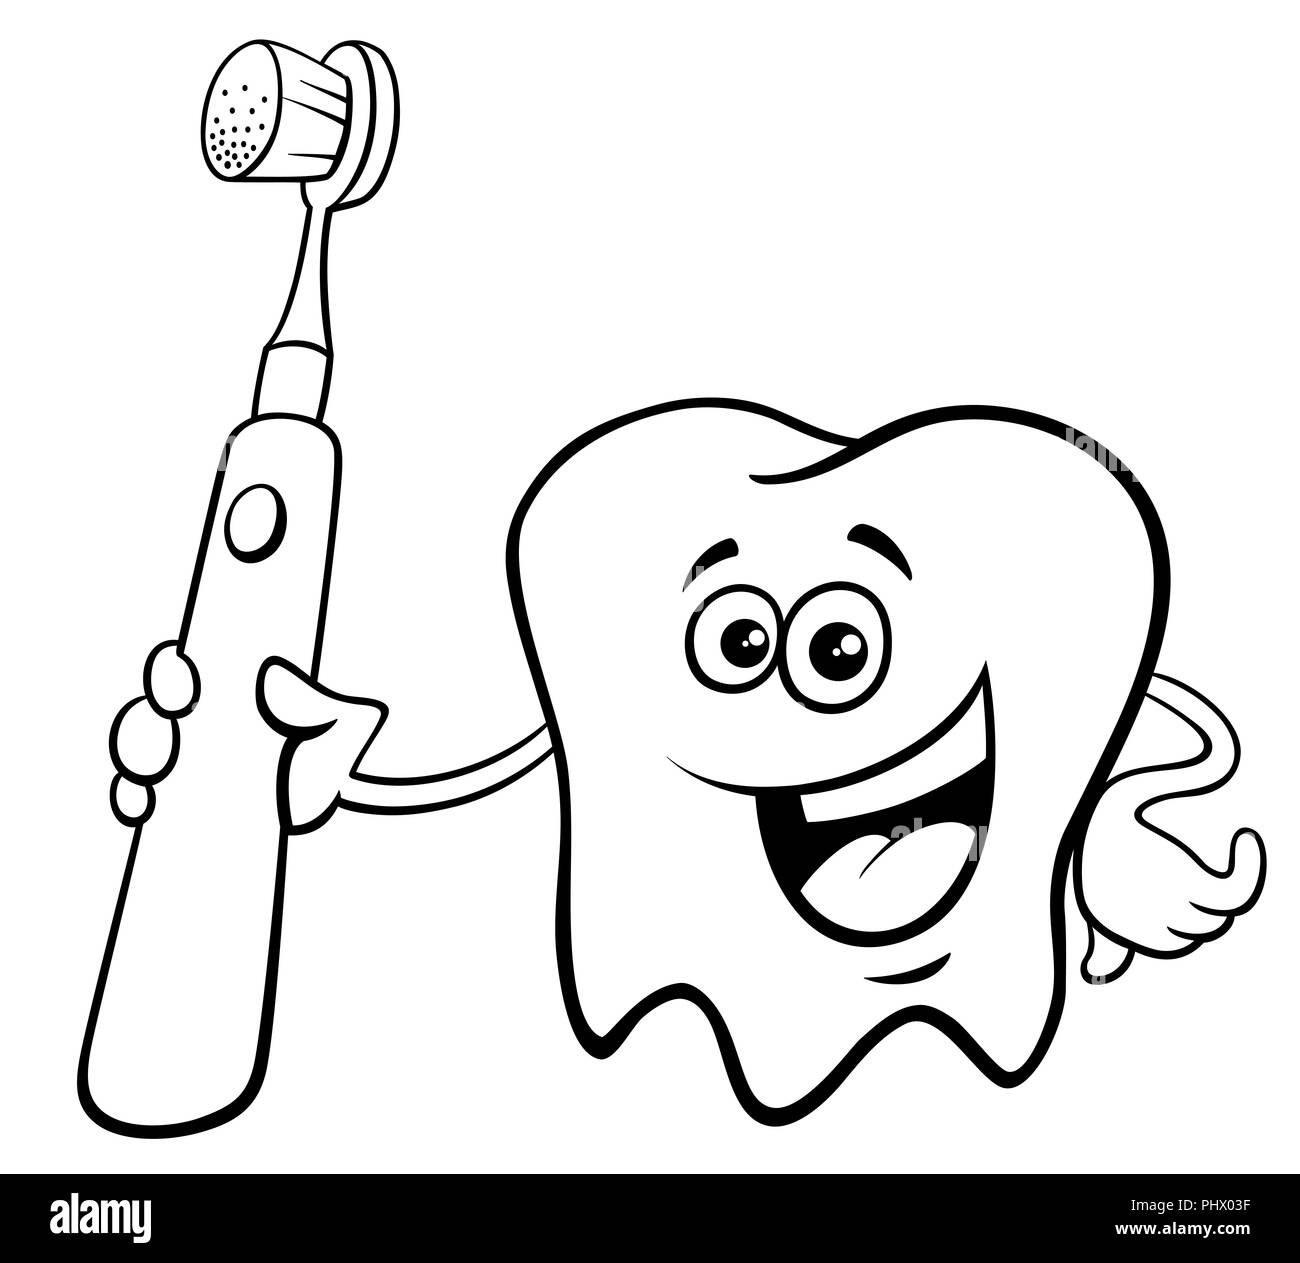 tooth and toothbrush coloring pages.html